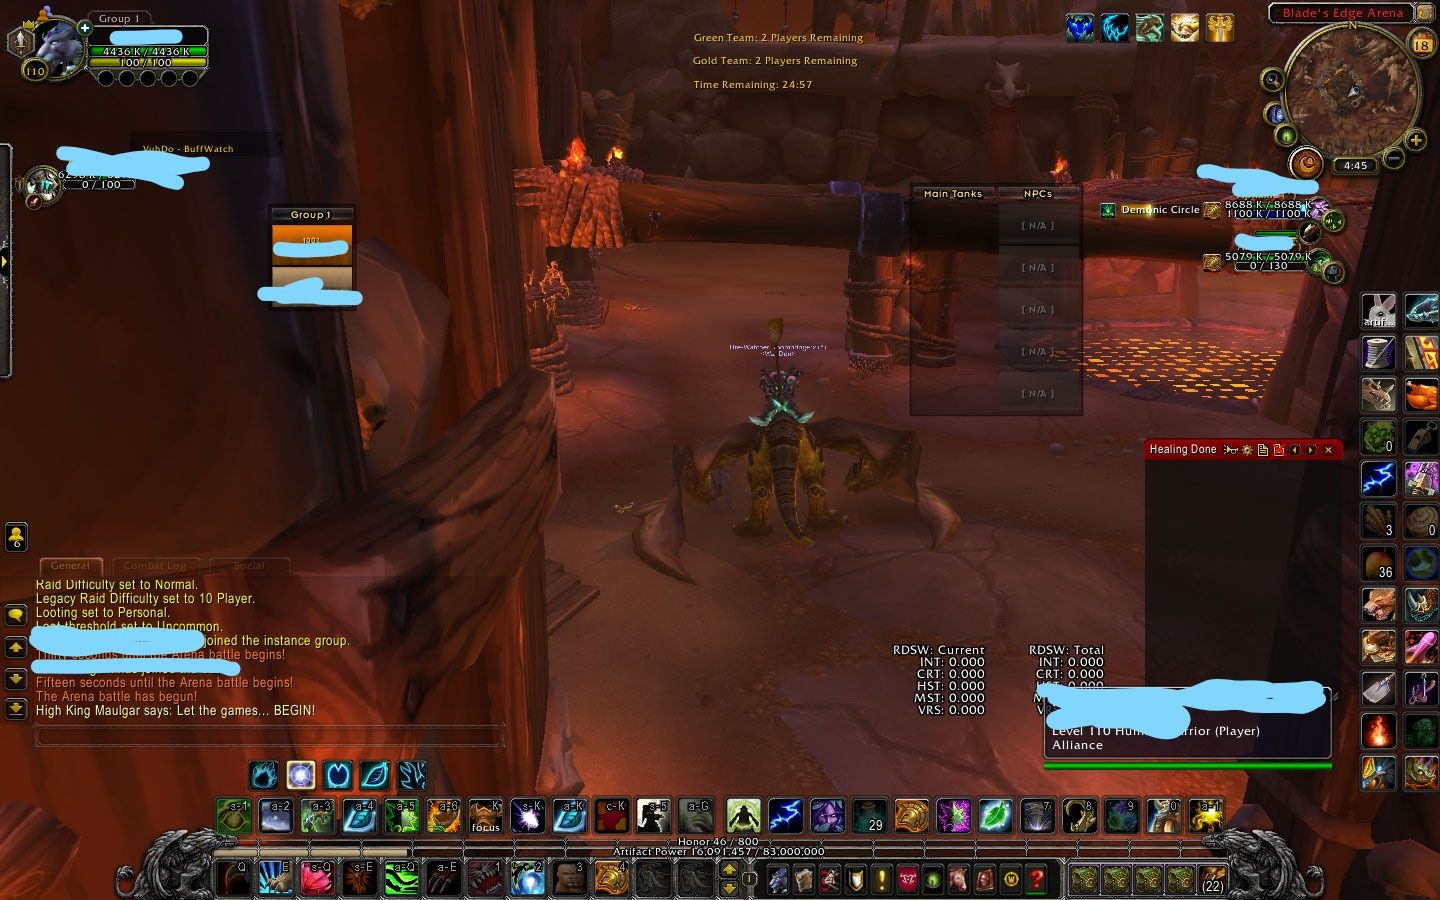 My opponents keep having ridiculous health in arena today. This is the only screenshot I took but there was also 10m fury warrior 7m priests mages and hunter. #worldofwarcraft #blizzard #Hearthstone #wow #Warcraft #BlizzardCS #gaming